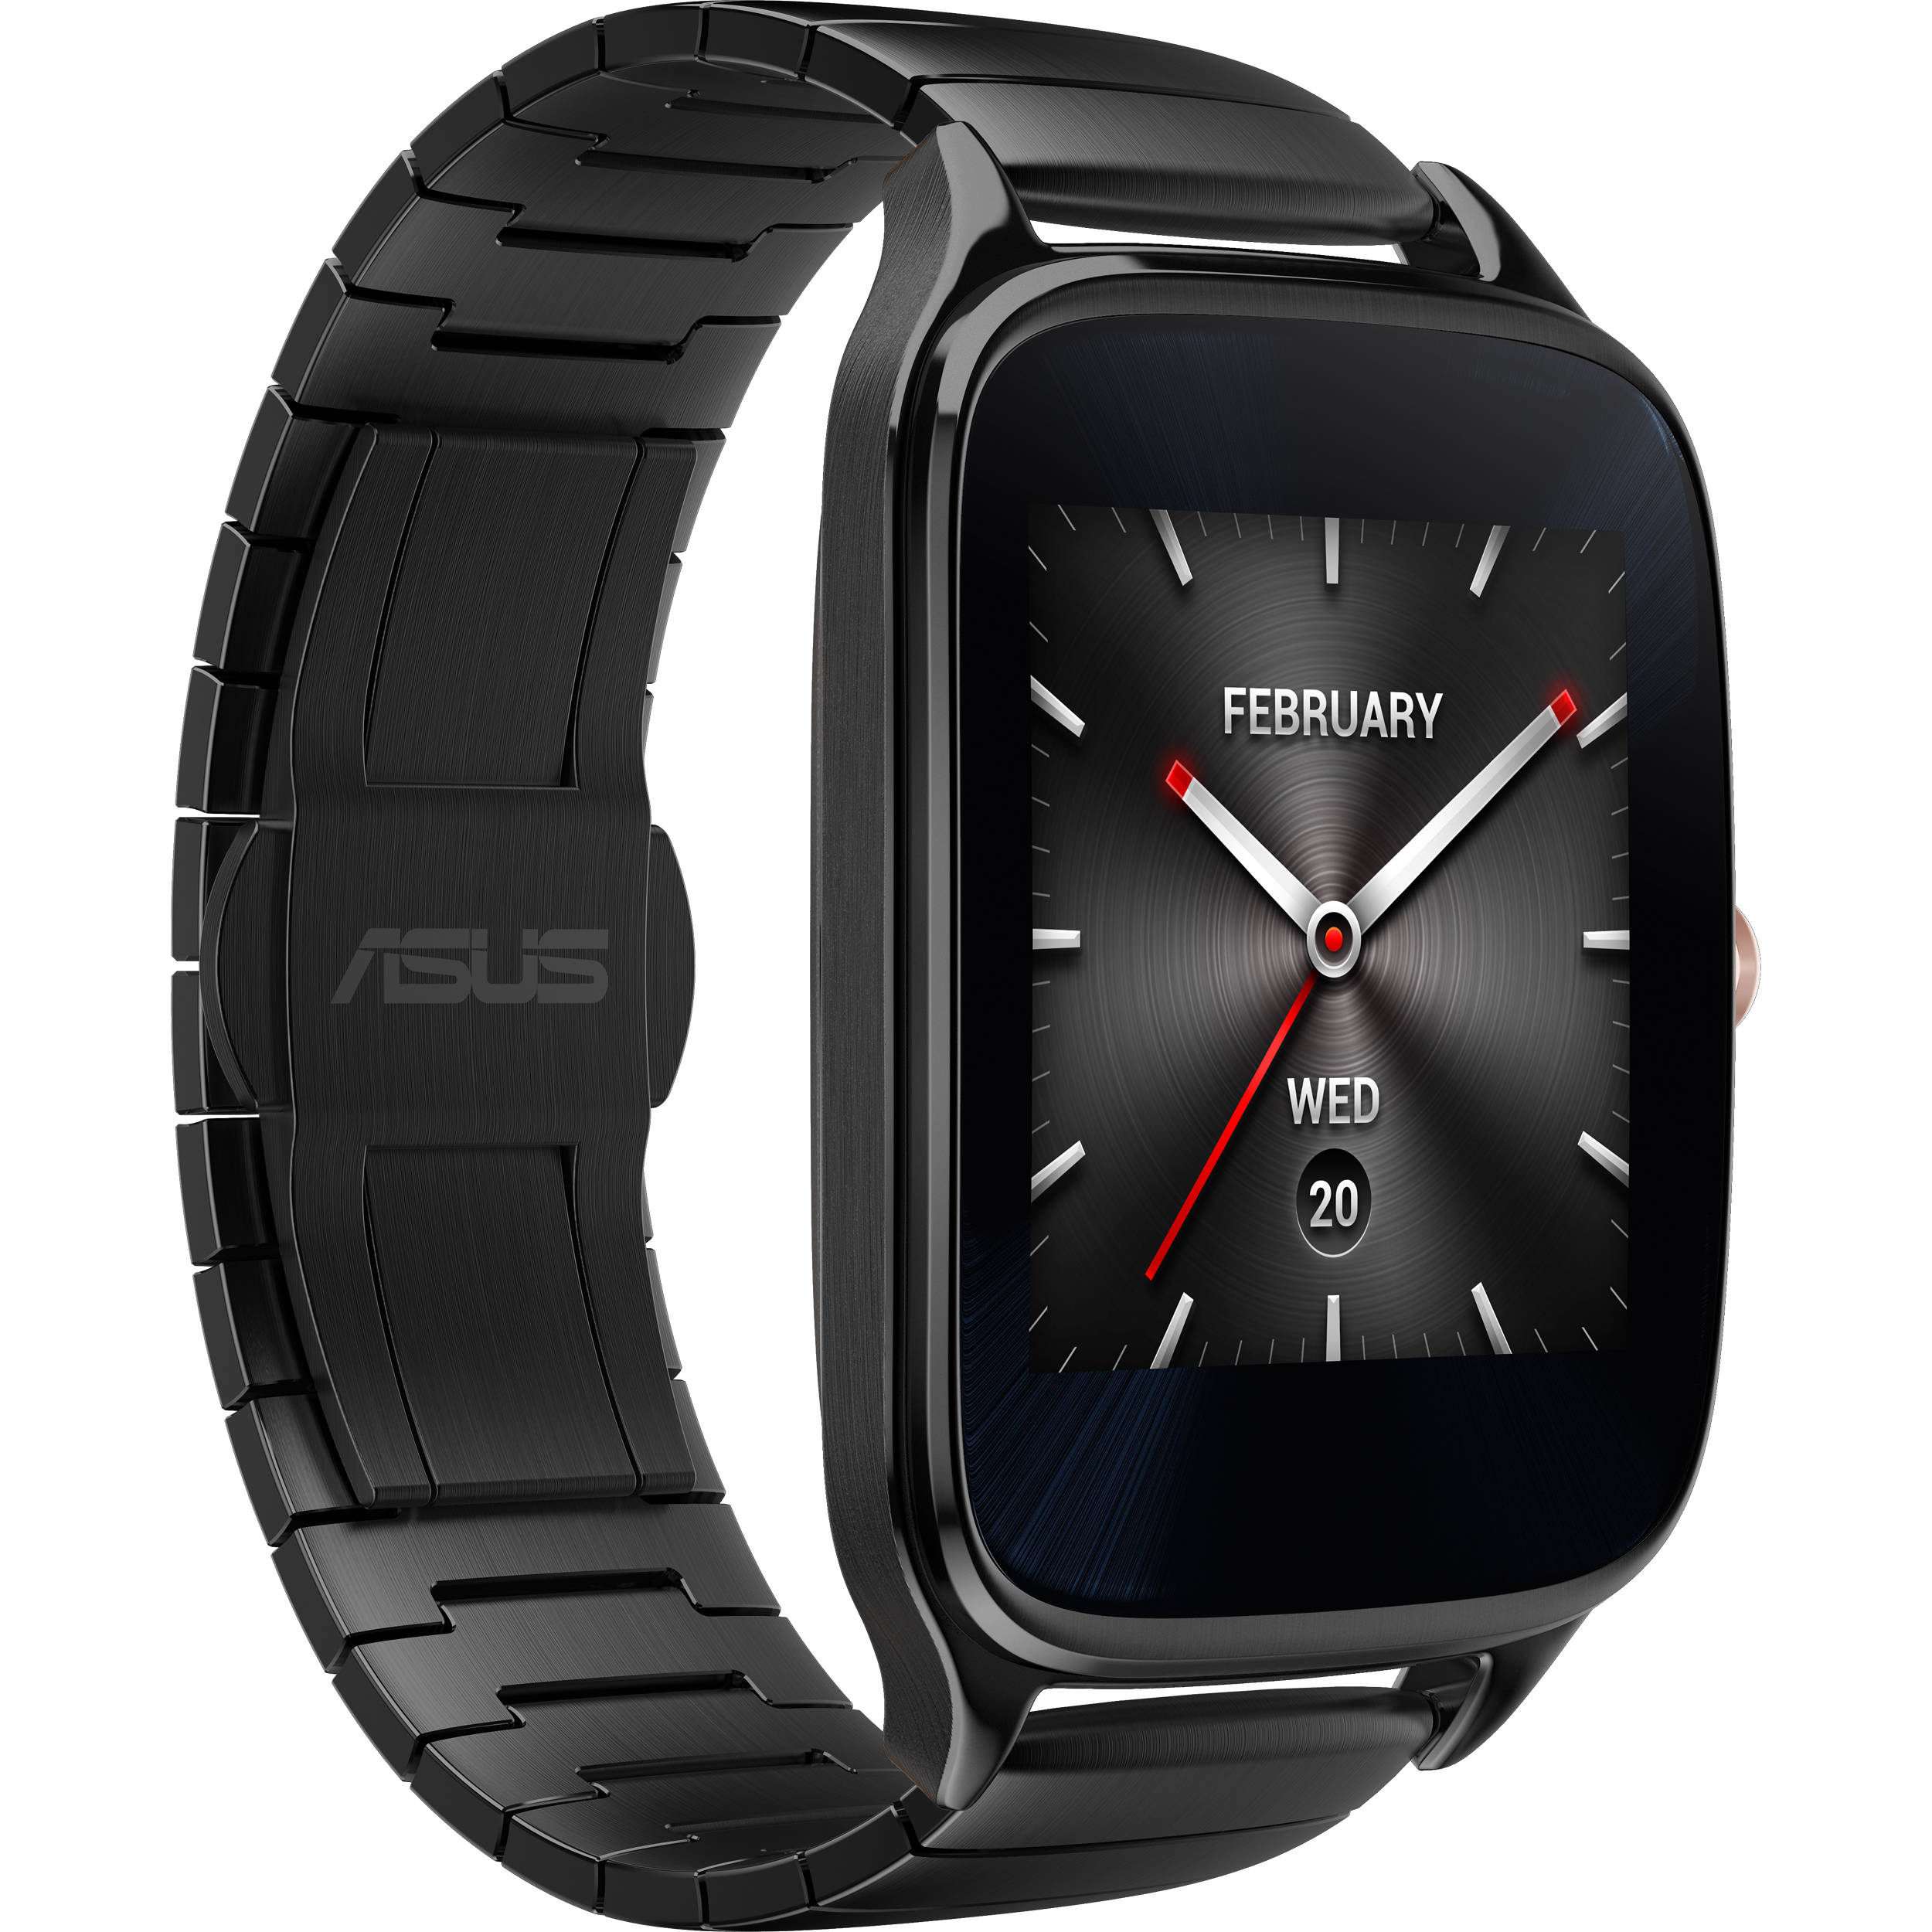 ASUS ZenWatch 2 Android Wear Smartwatch WI501Q-GM-GR B&H Photo